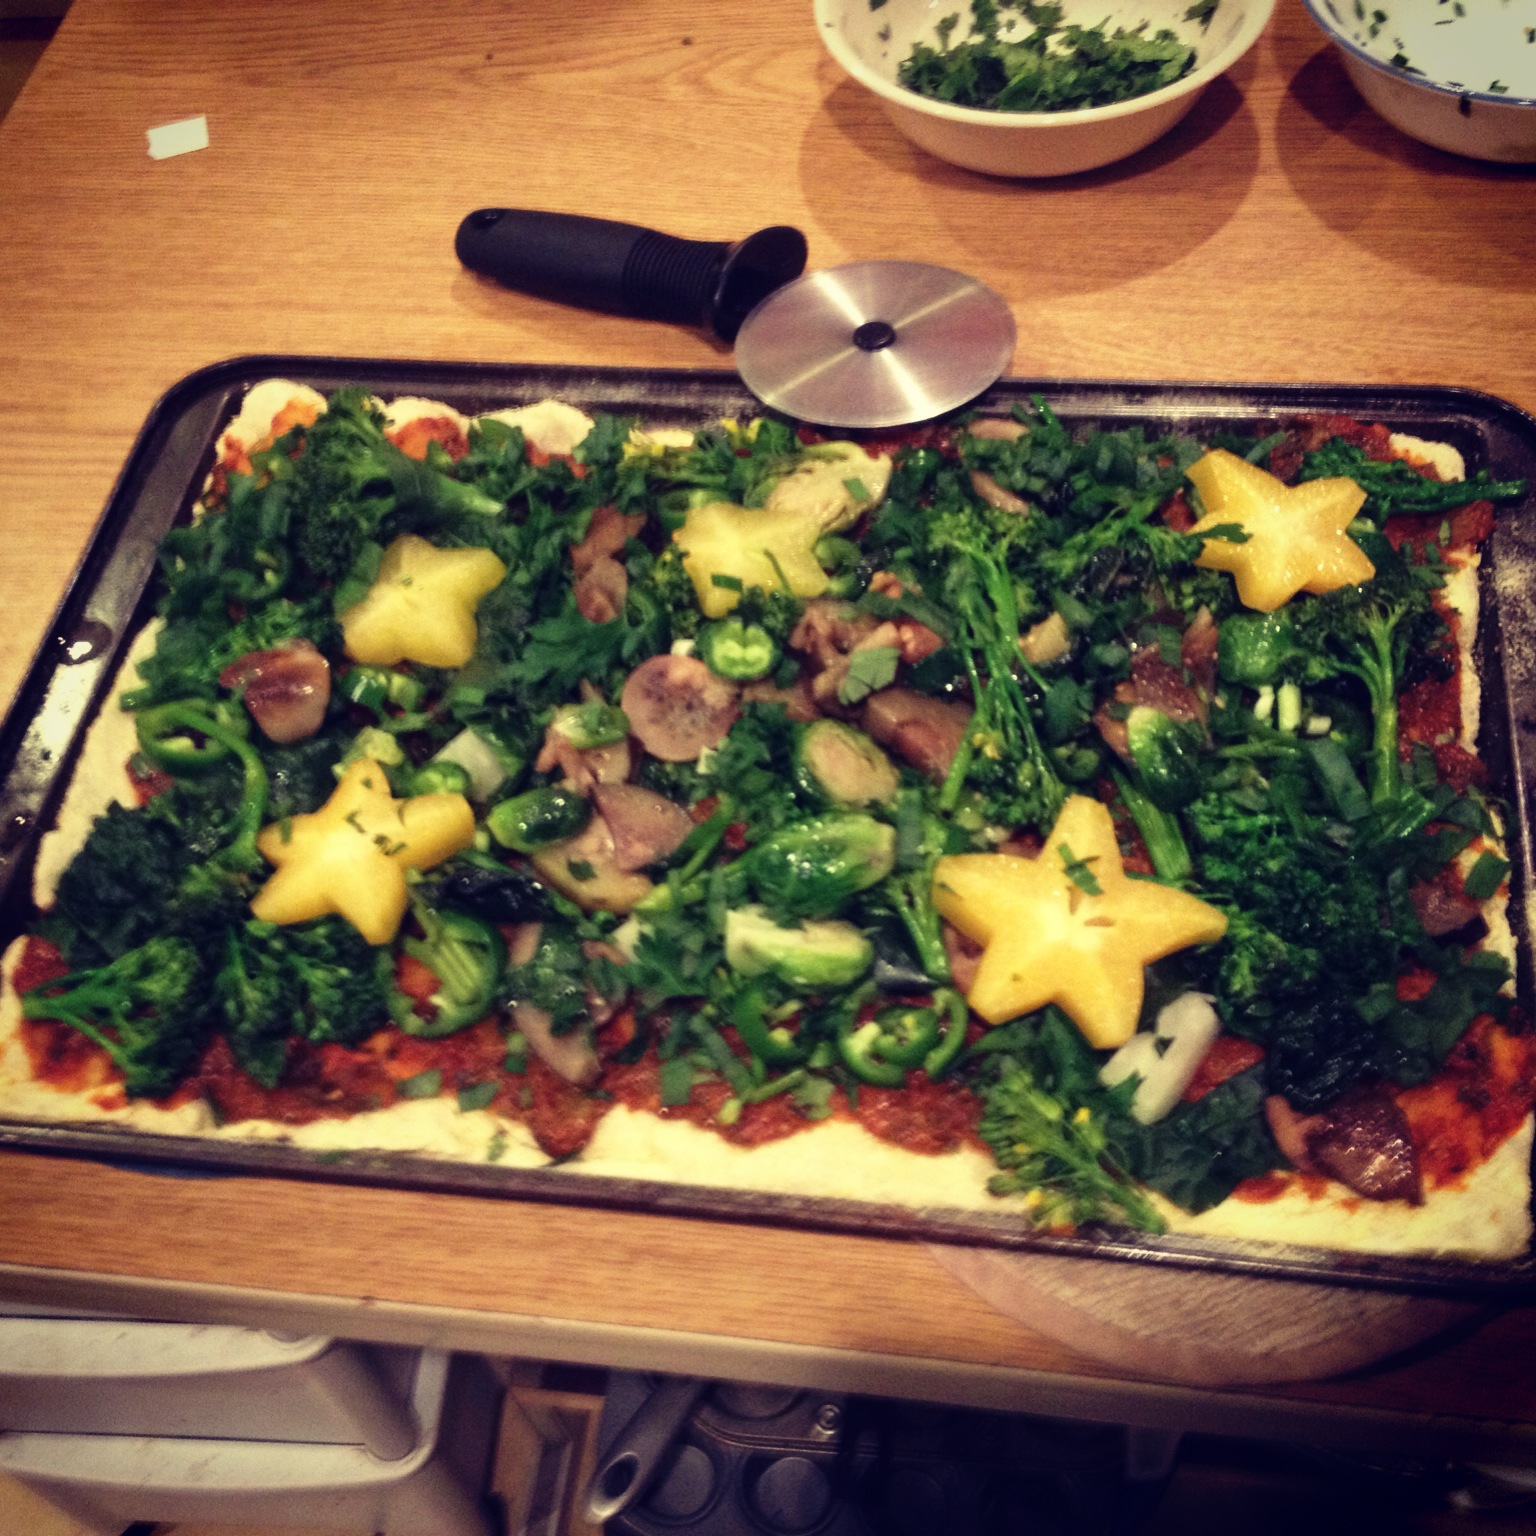 Cassava Pizza Dough With Starfuit and Kale